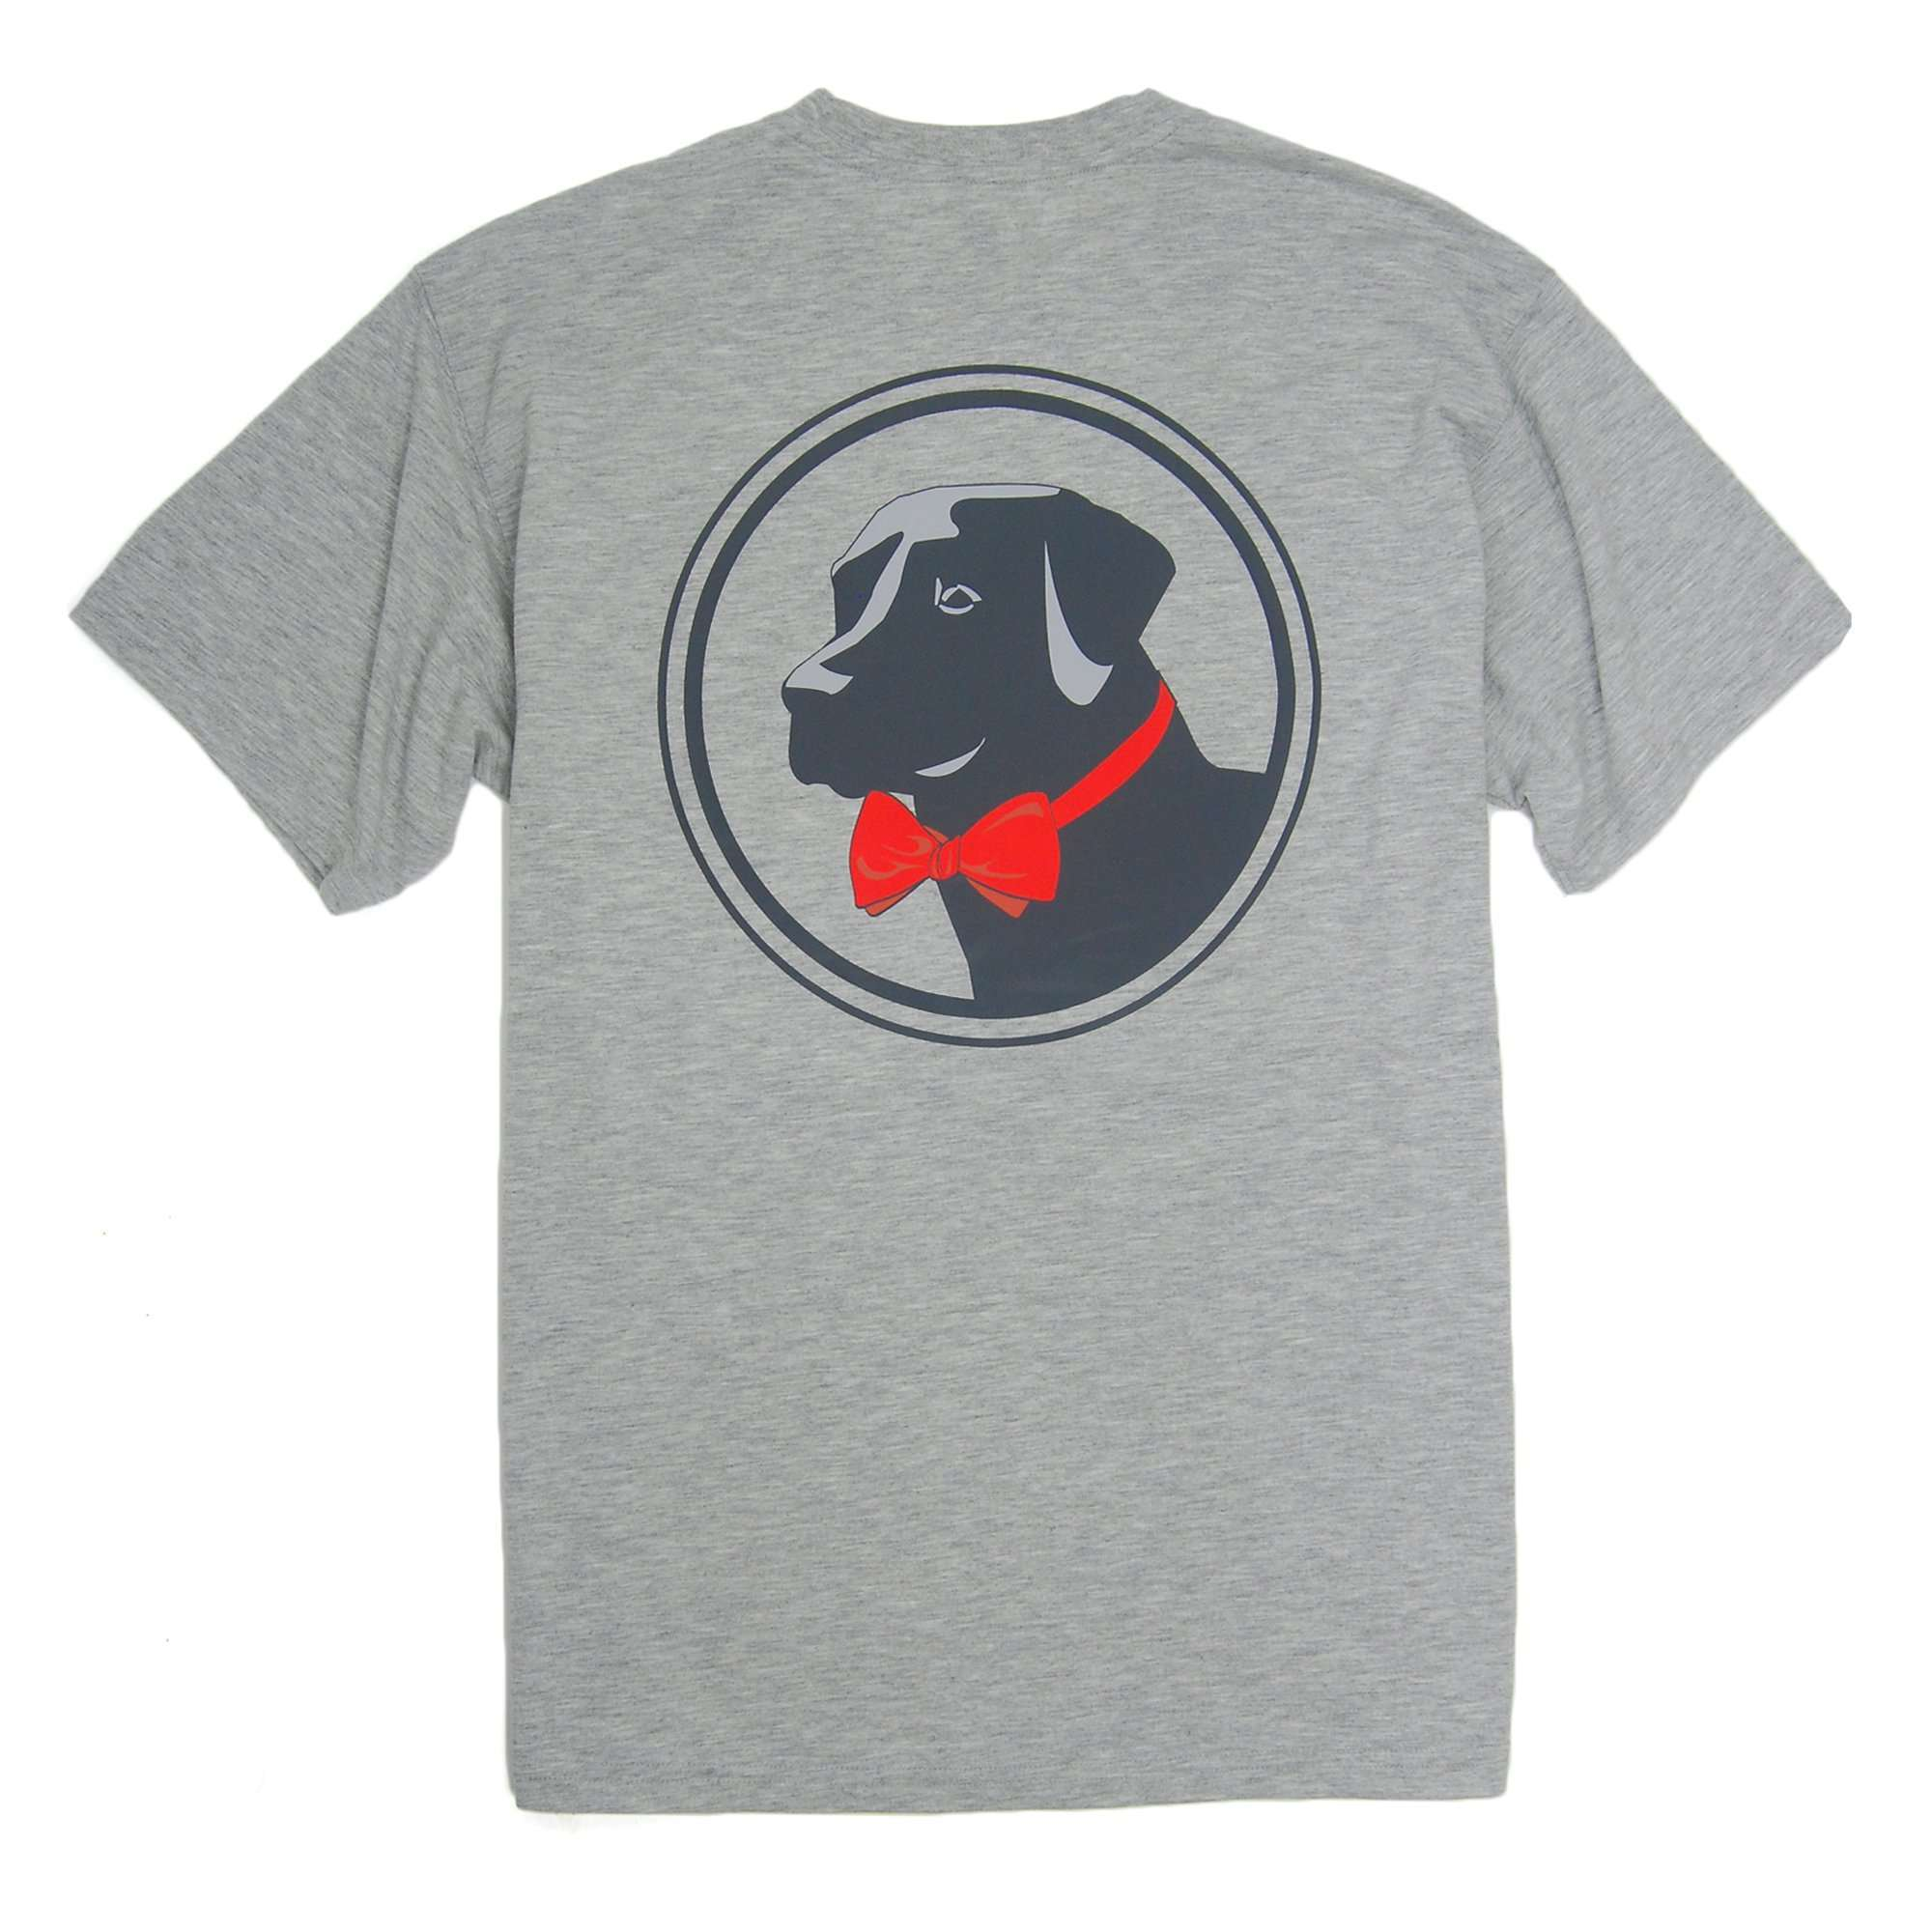 Original Logo Tee: Heather Grey